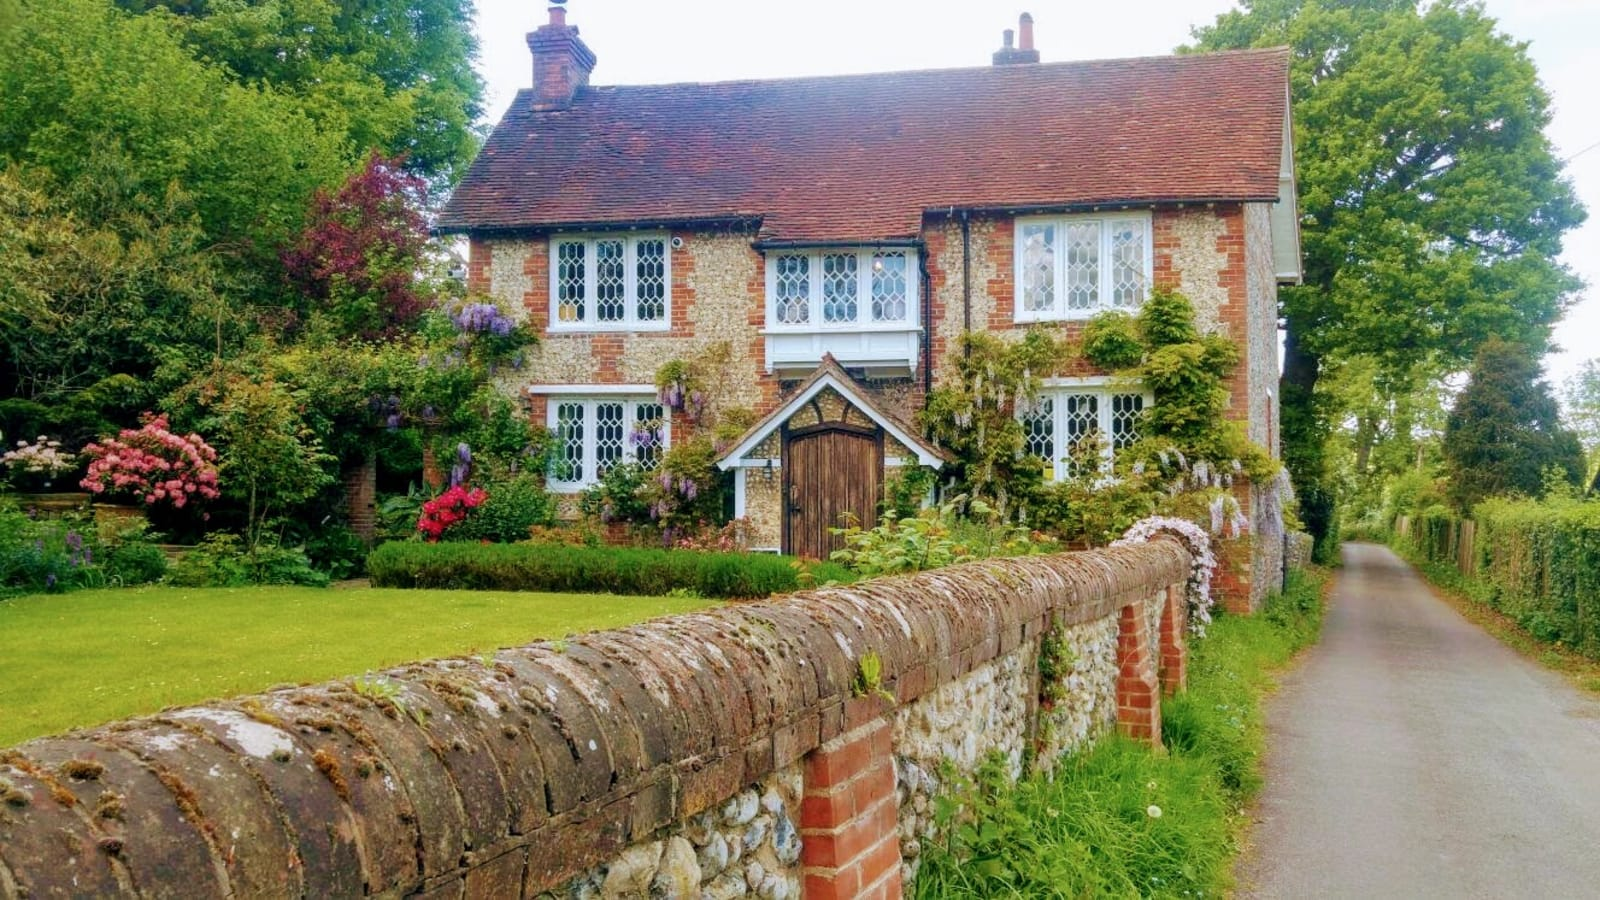 Picturesque Quaint Cottage in a Small English Village